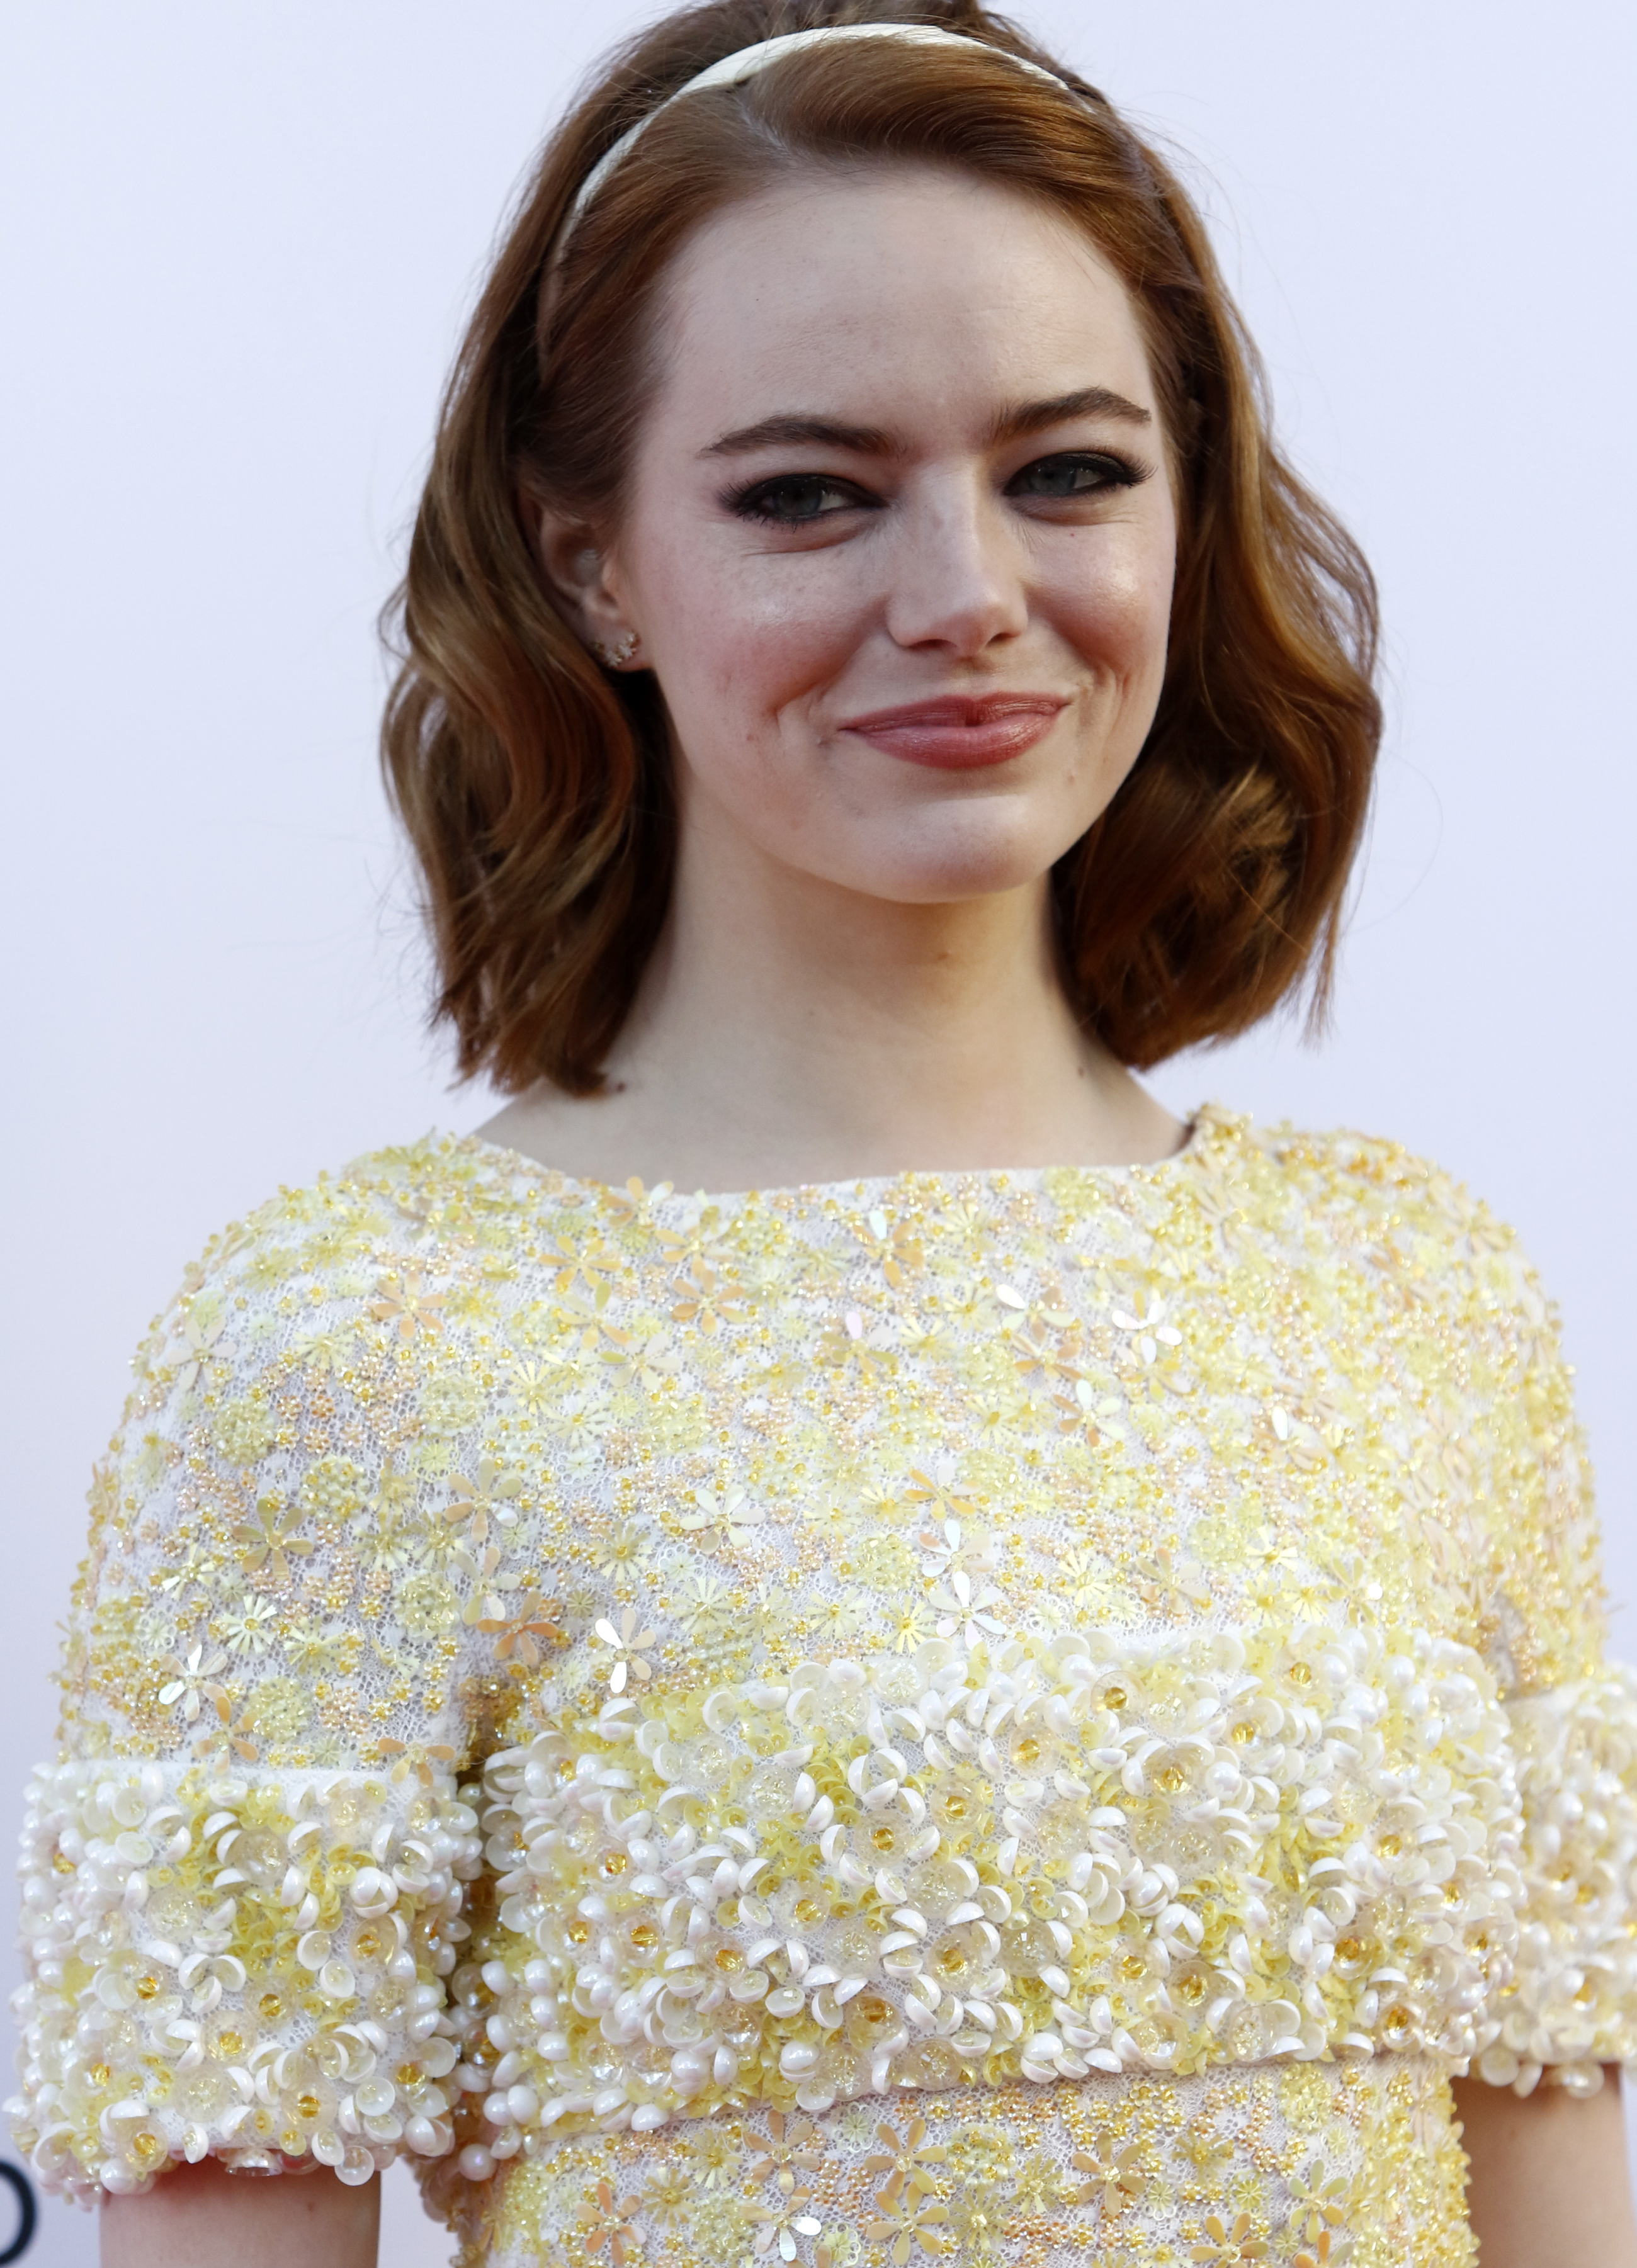 Emma Stone Wears No Makeup At Music Fest Stylecaster